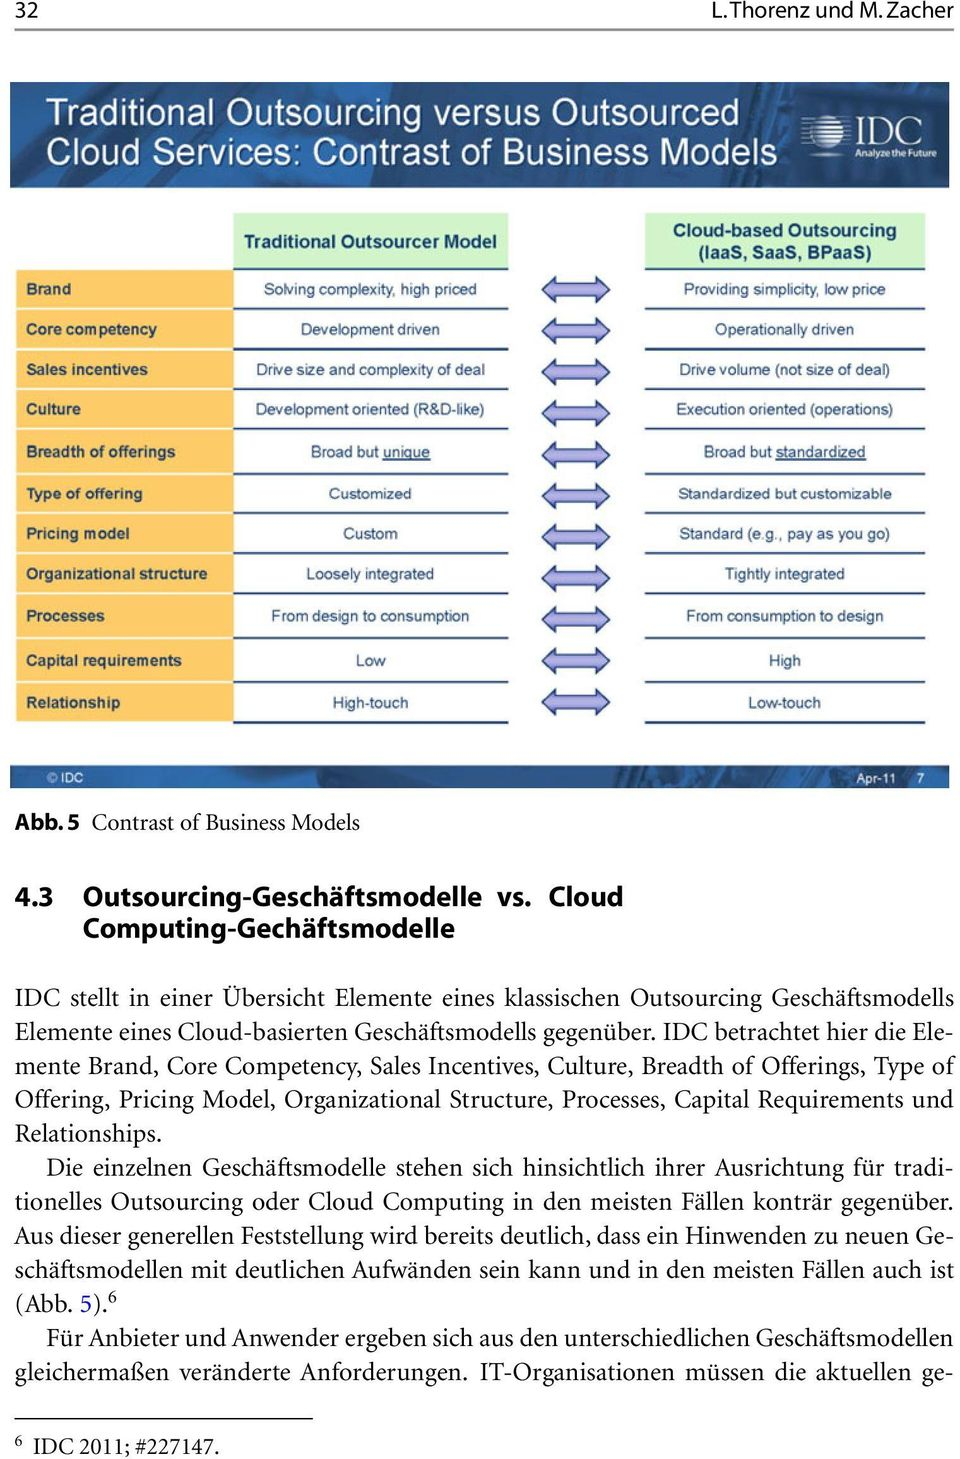 IDC betrachtet hier die Elemente Brand, Core Competency, Sales Incentives, Culture, Breadth of Offerings, Type of Offering, Pricing Model, Organizational Structure, Processes, Capital Requirements